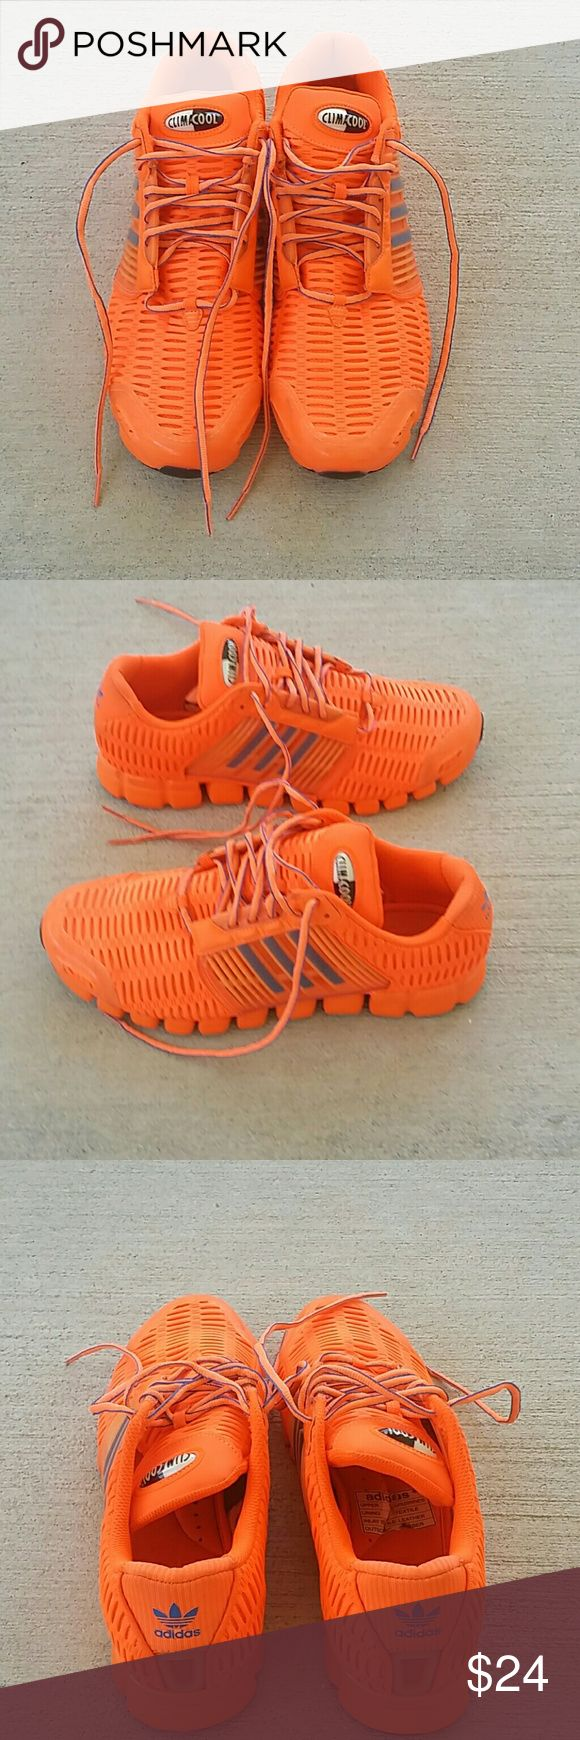 Men's adidas Shoes Men's adidas Shoes adidas Shoes Athletic Shoes